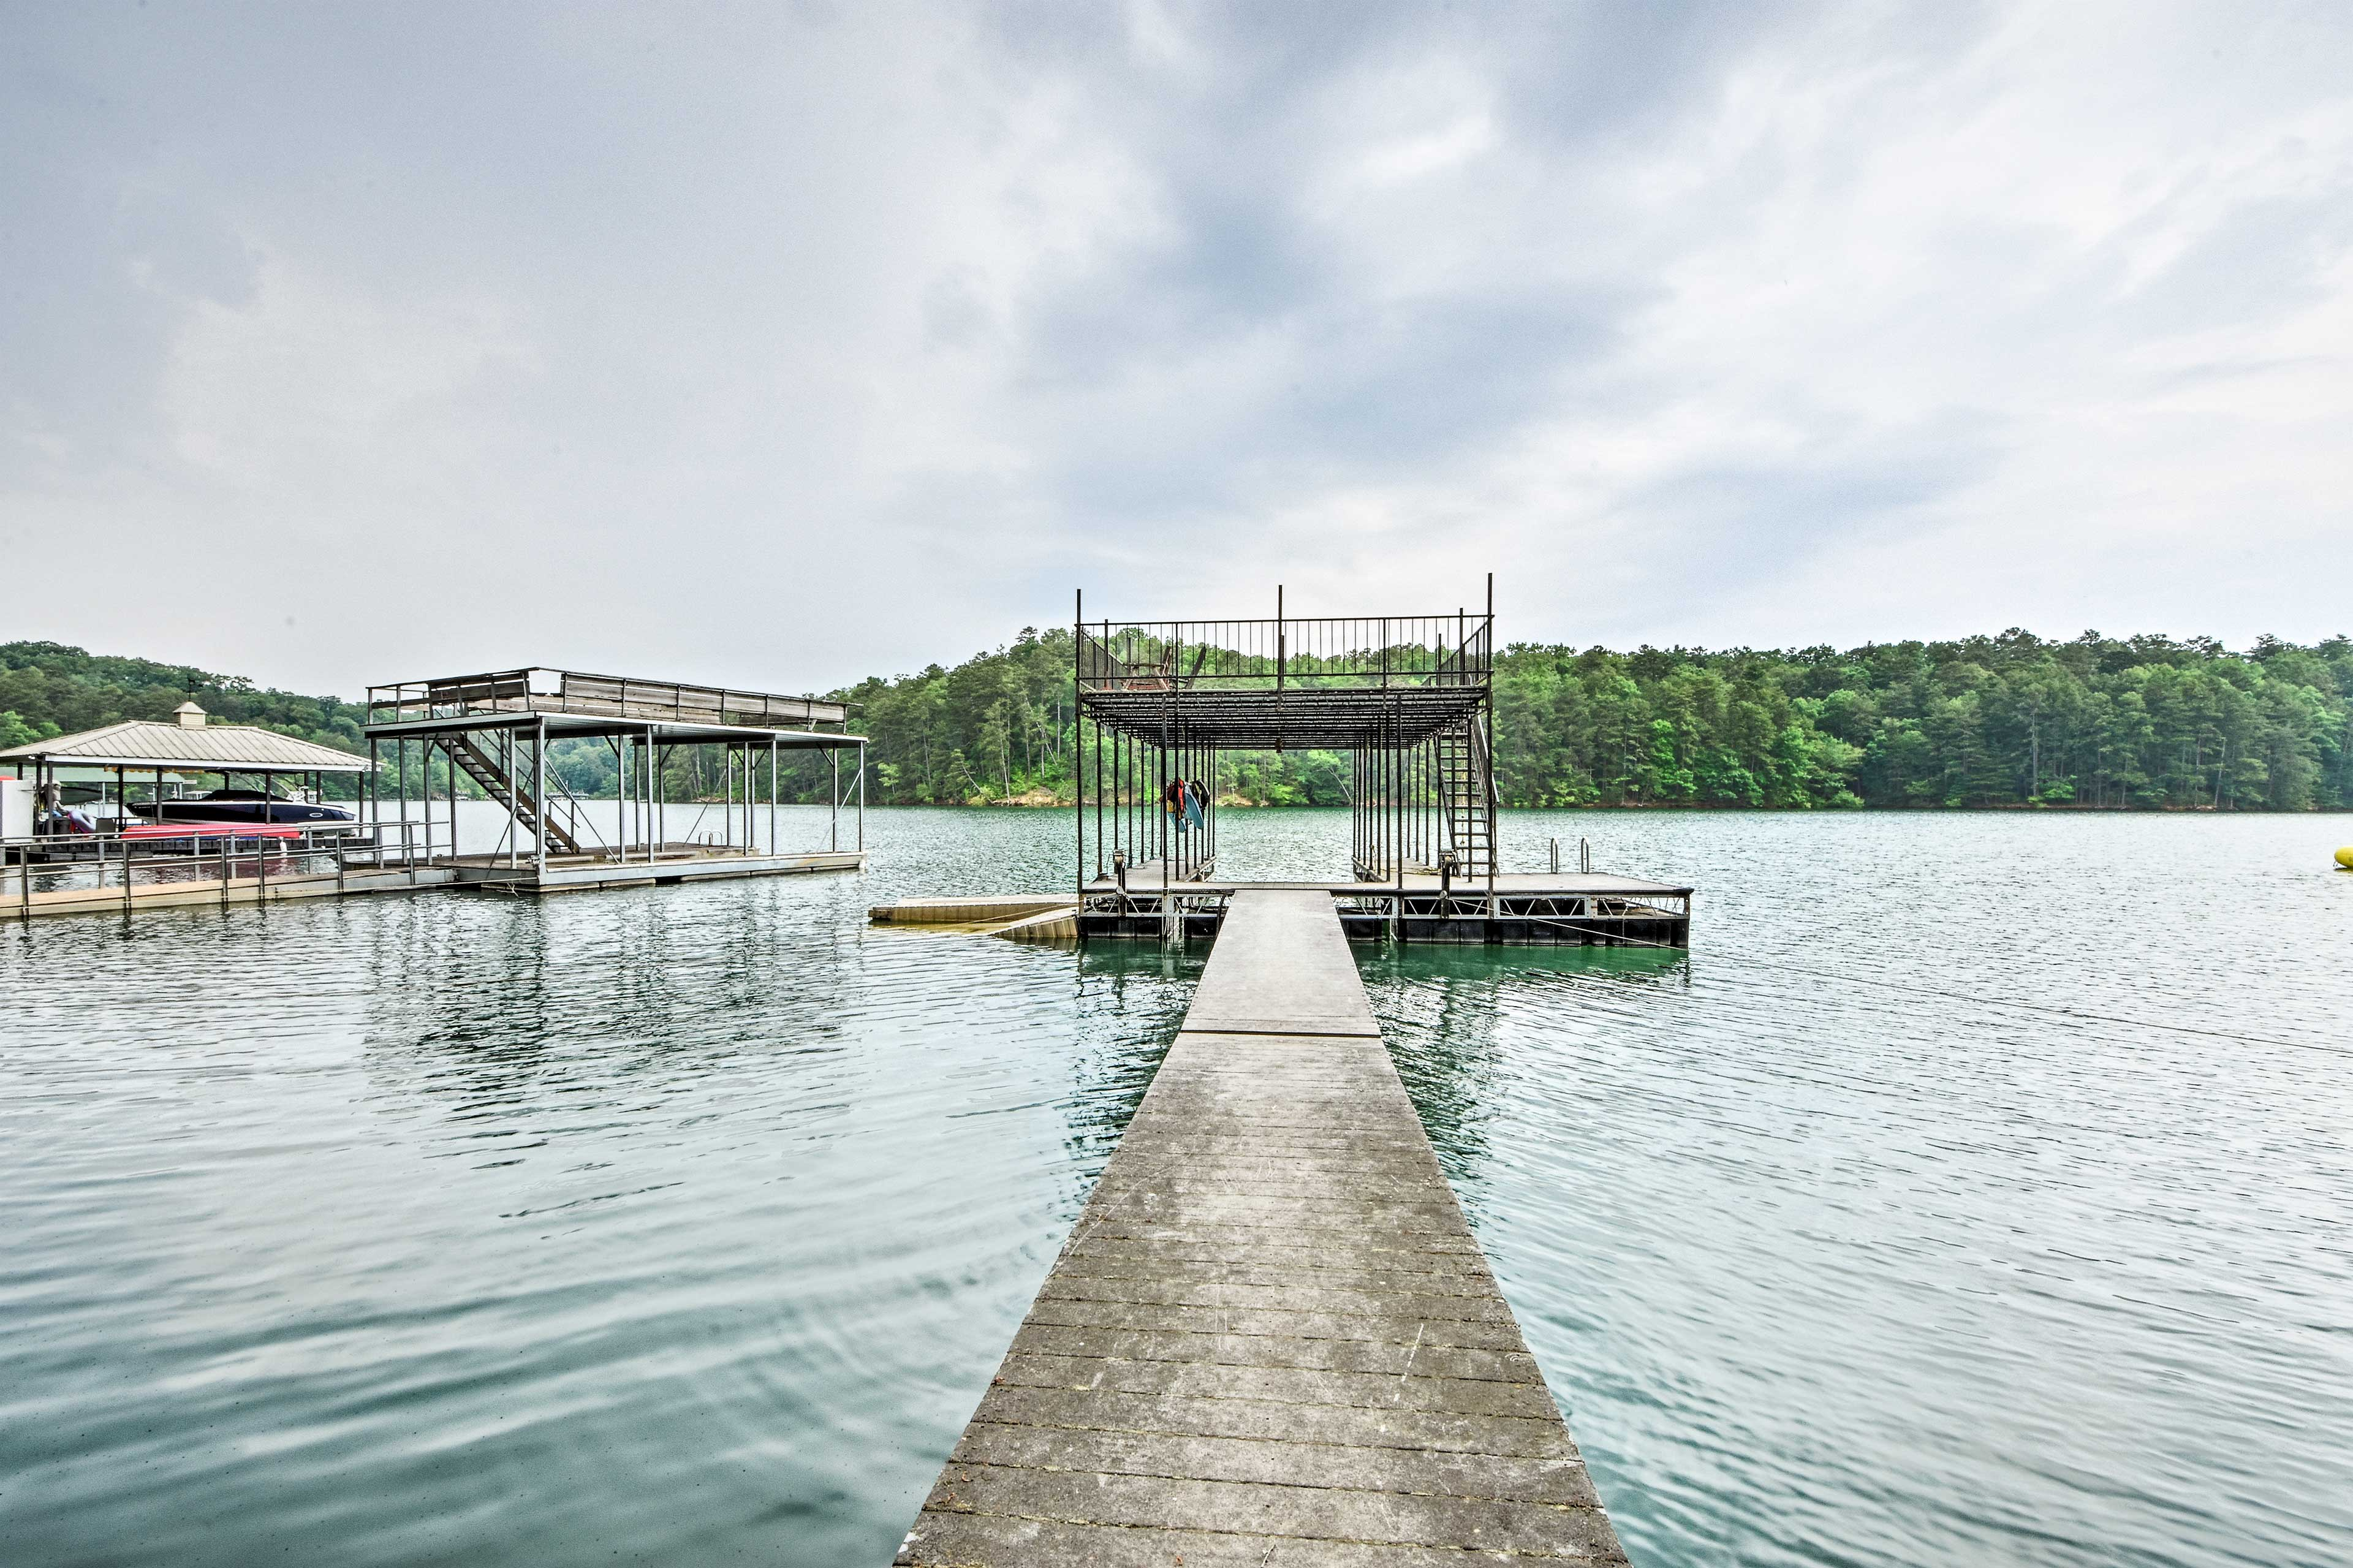 Afternoons await you on this private double-decker boat dock!